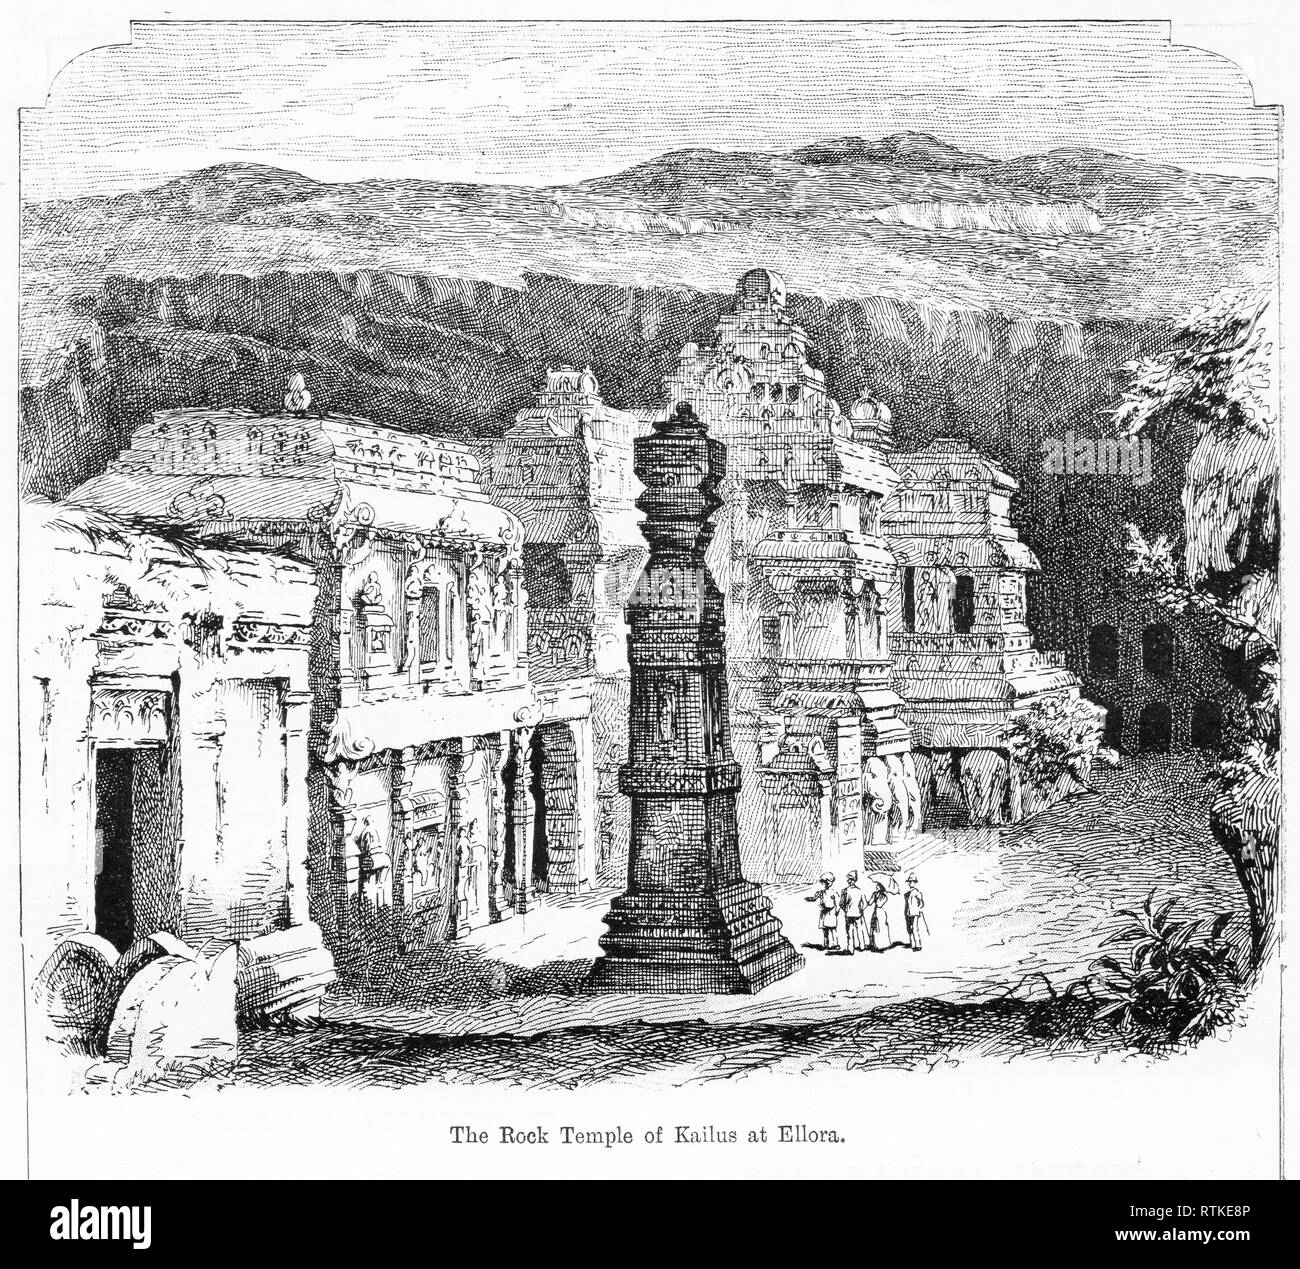 Engraving of the Hindu Kailasa Temple in Ellera, Carved to represent Mt. Kailasa, the home of the god Shiva in the Himalayas. It is the largest monolithic structure in the world, carved top-down from a single rock. From Chatterbox magazine, 1905 - Stock Image